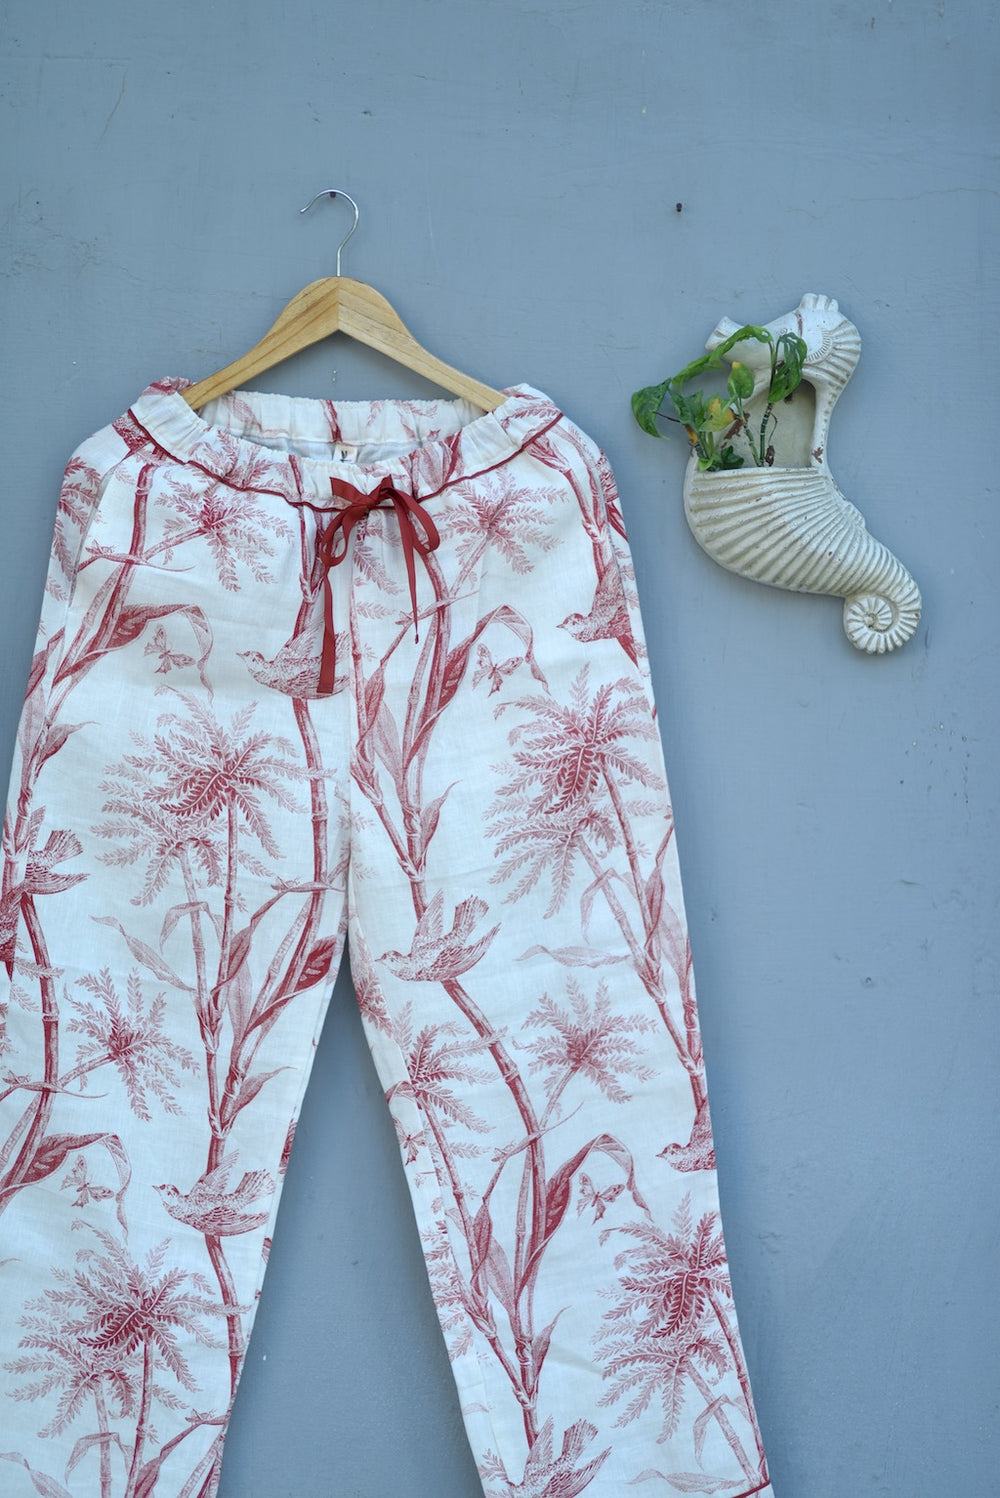 Jord, Pure Linen Cream Pajamas with Currant Color Bird Print with Pom Poms - kinchecom